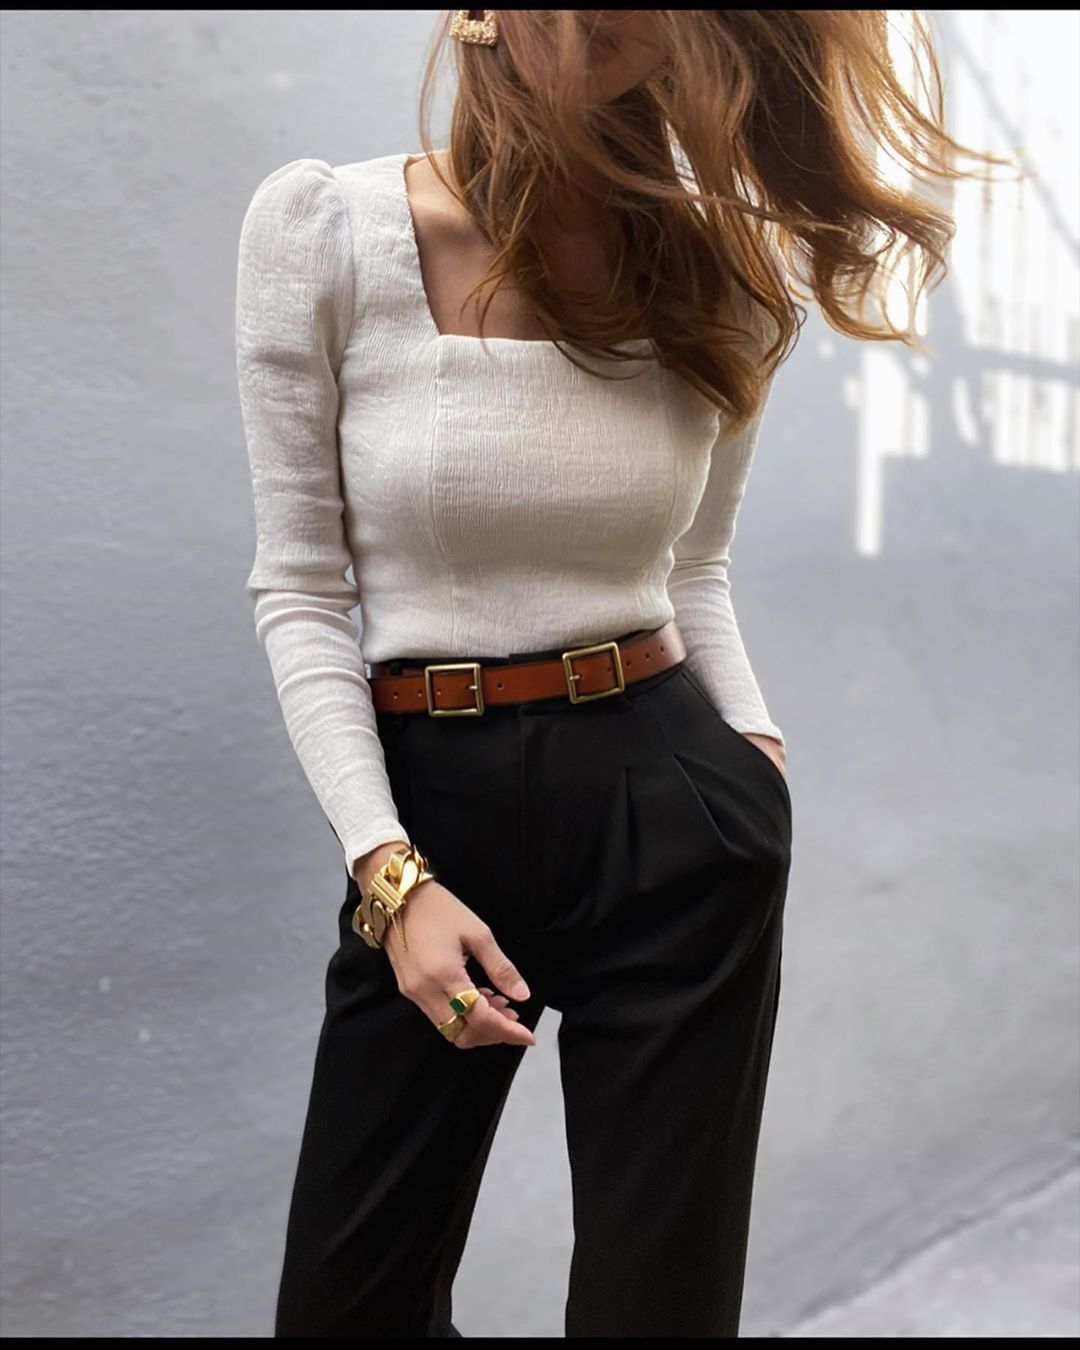 Square Neckline Tops Are My Favorite Trend for Spring